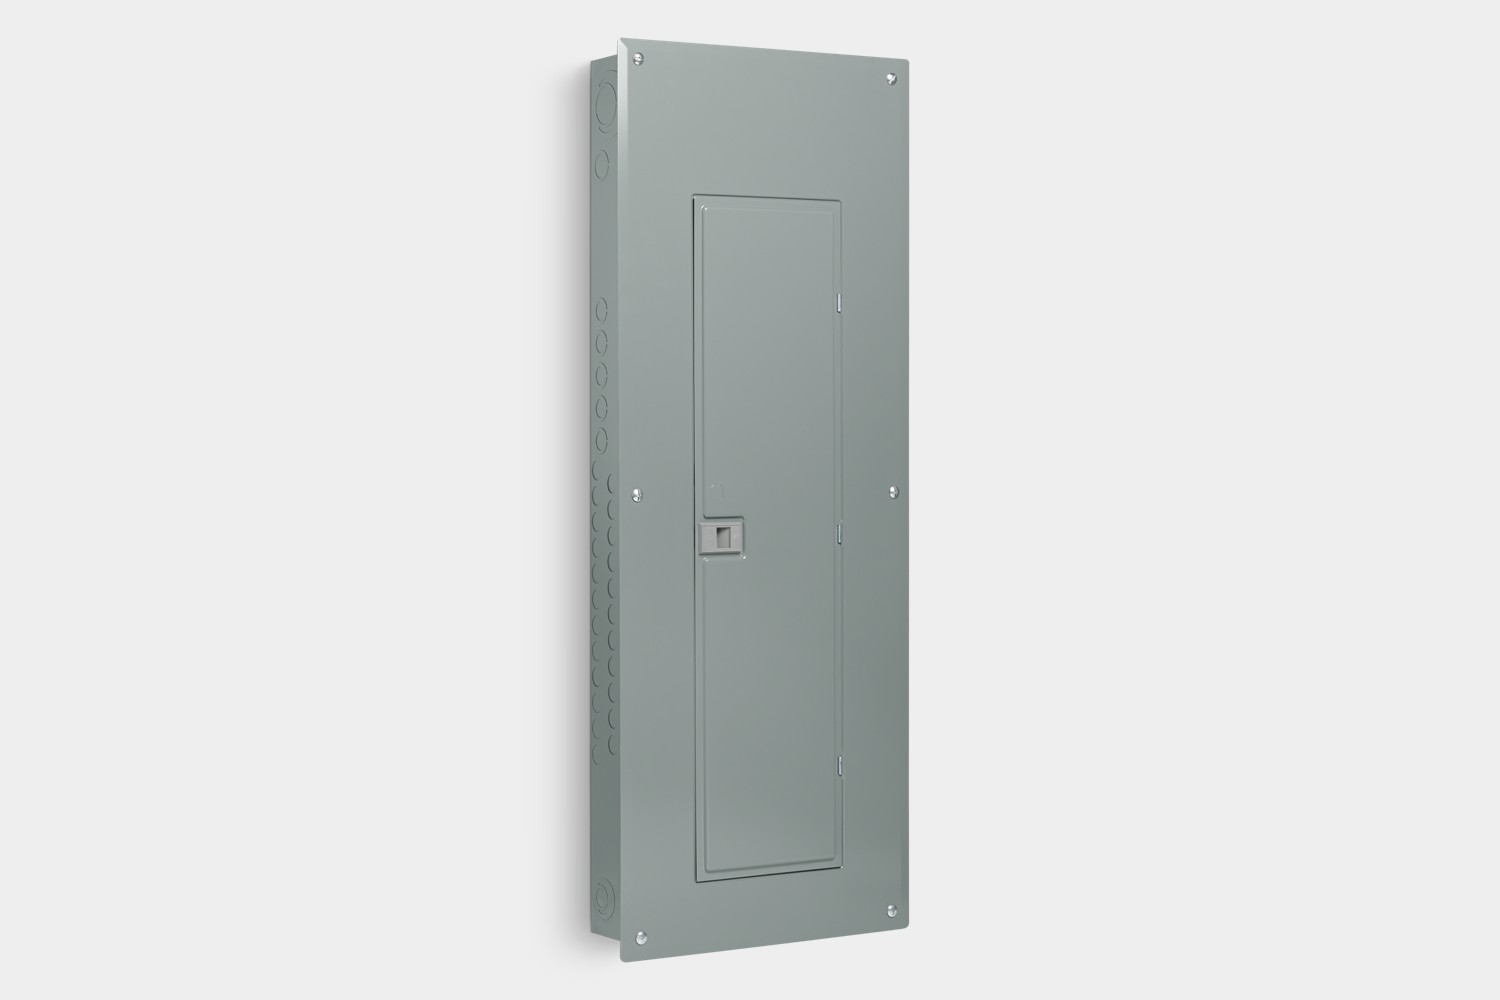 hight resolution of 20resal with automatic transfer switch